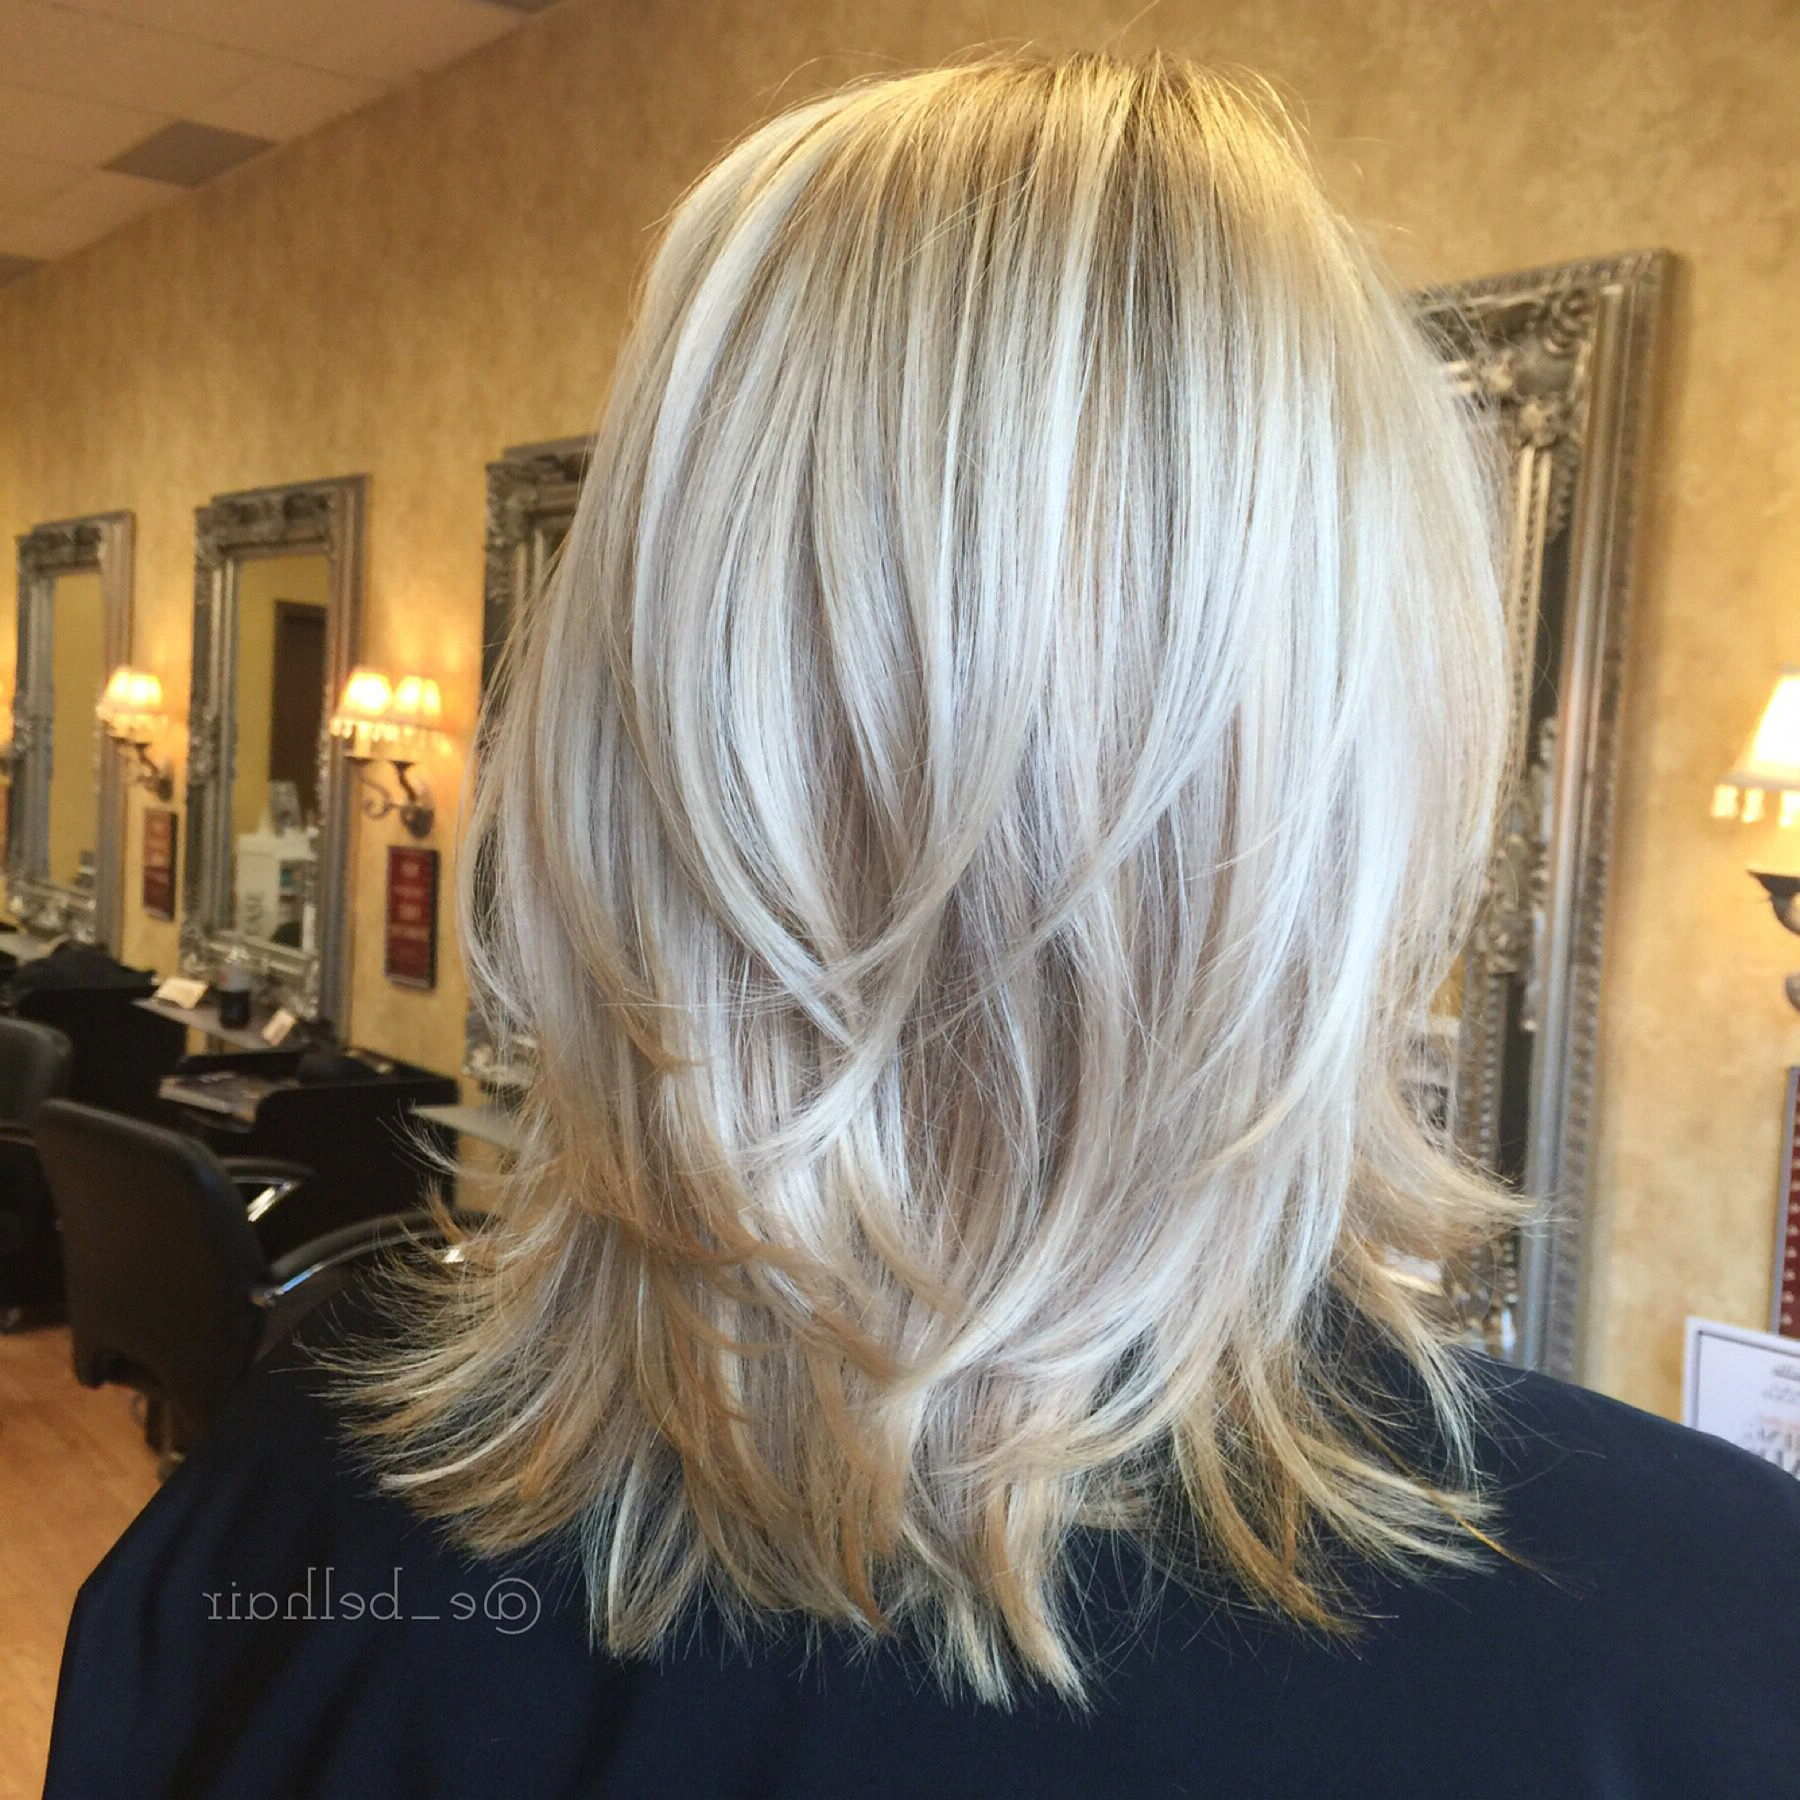 Most Recent Long Tousled Voluminous Hairstyles Intended For Shoulder Length Cut With Tousled Layers And Fresh Blonde Color (View 12 of 20)